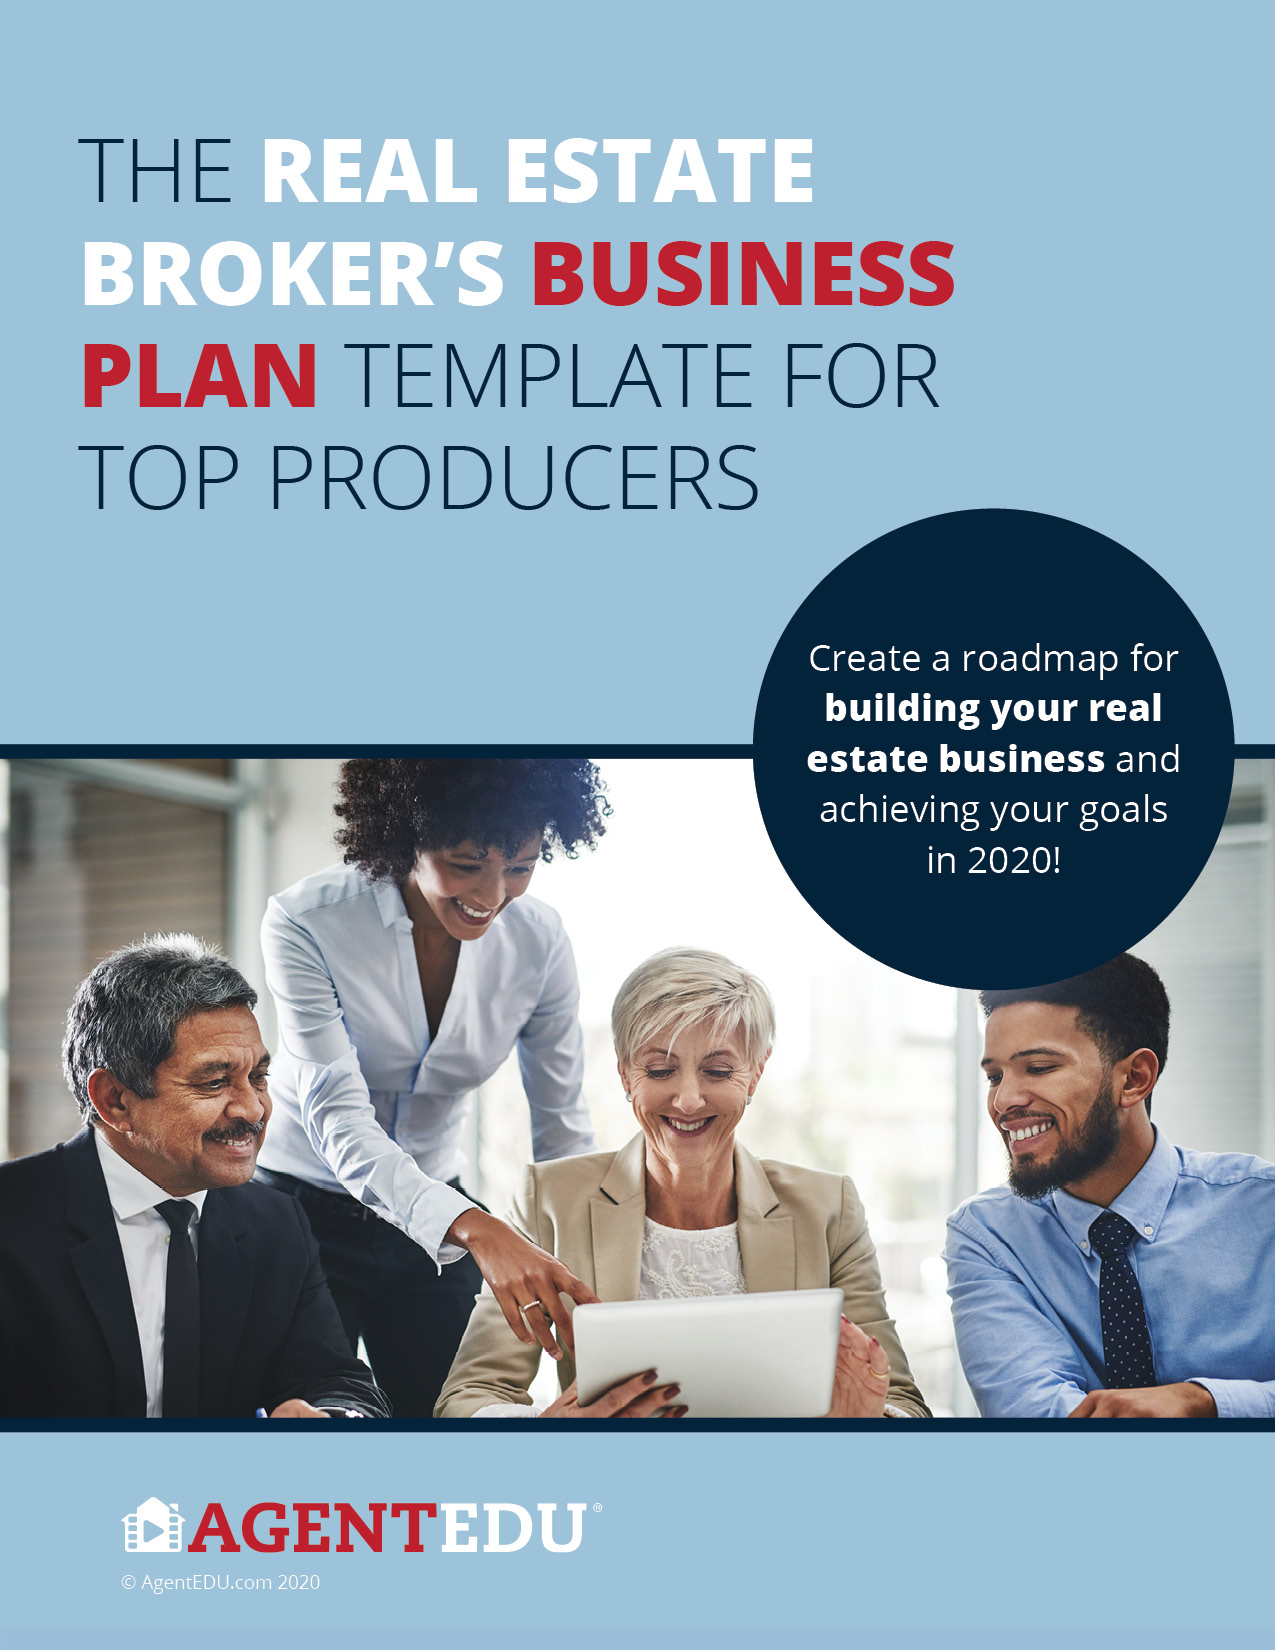 Download your free 2020 business plan and get ahead of the competition!